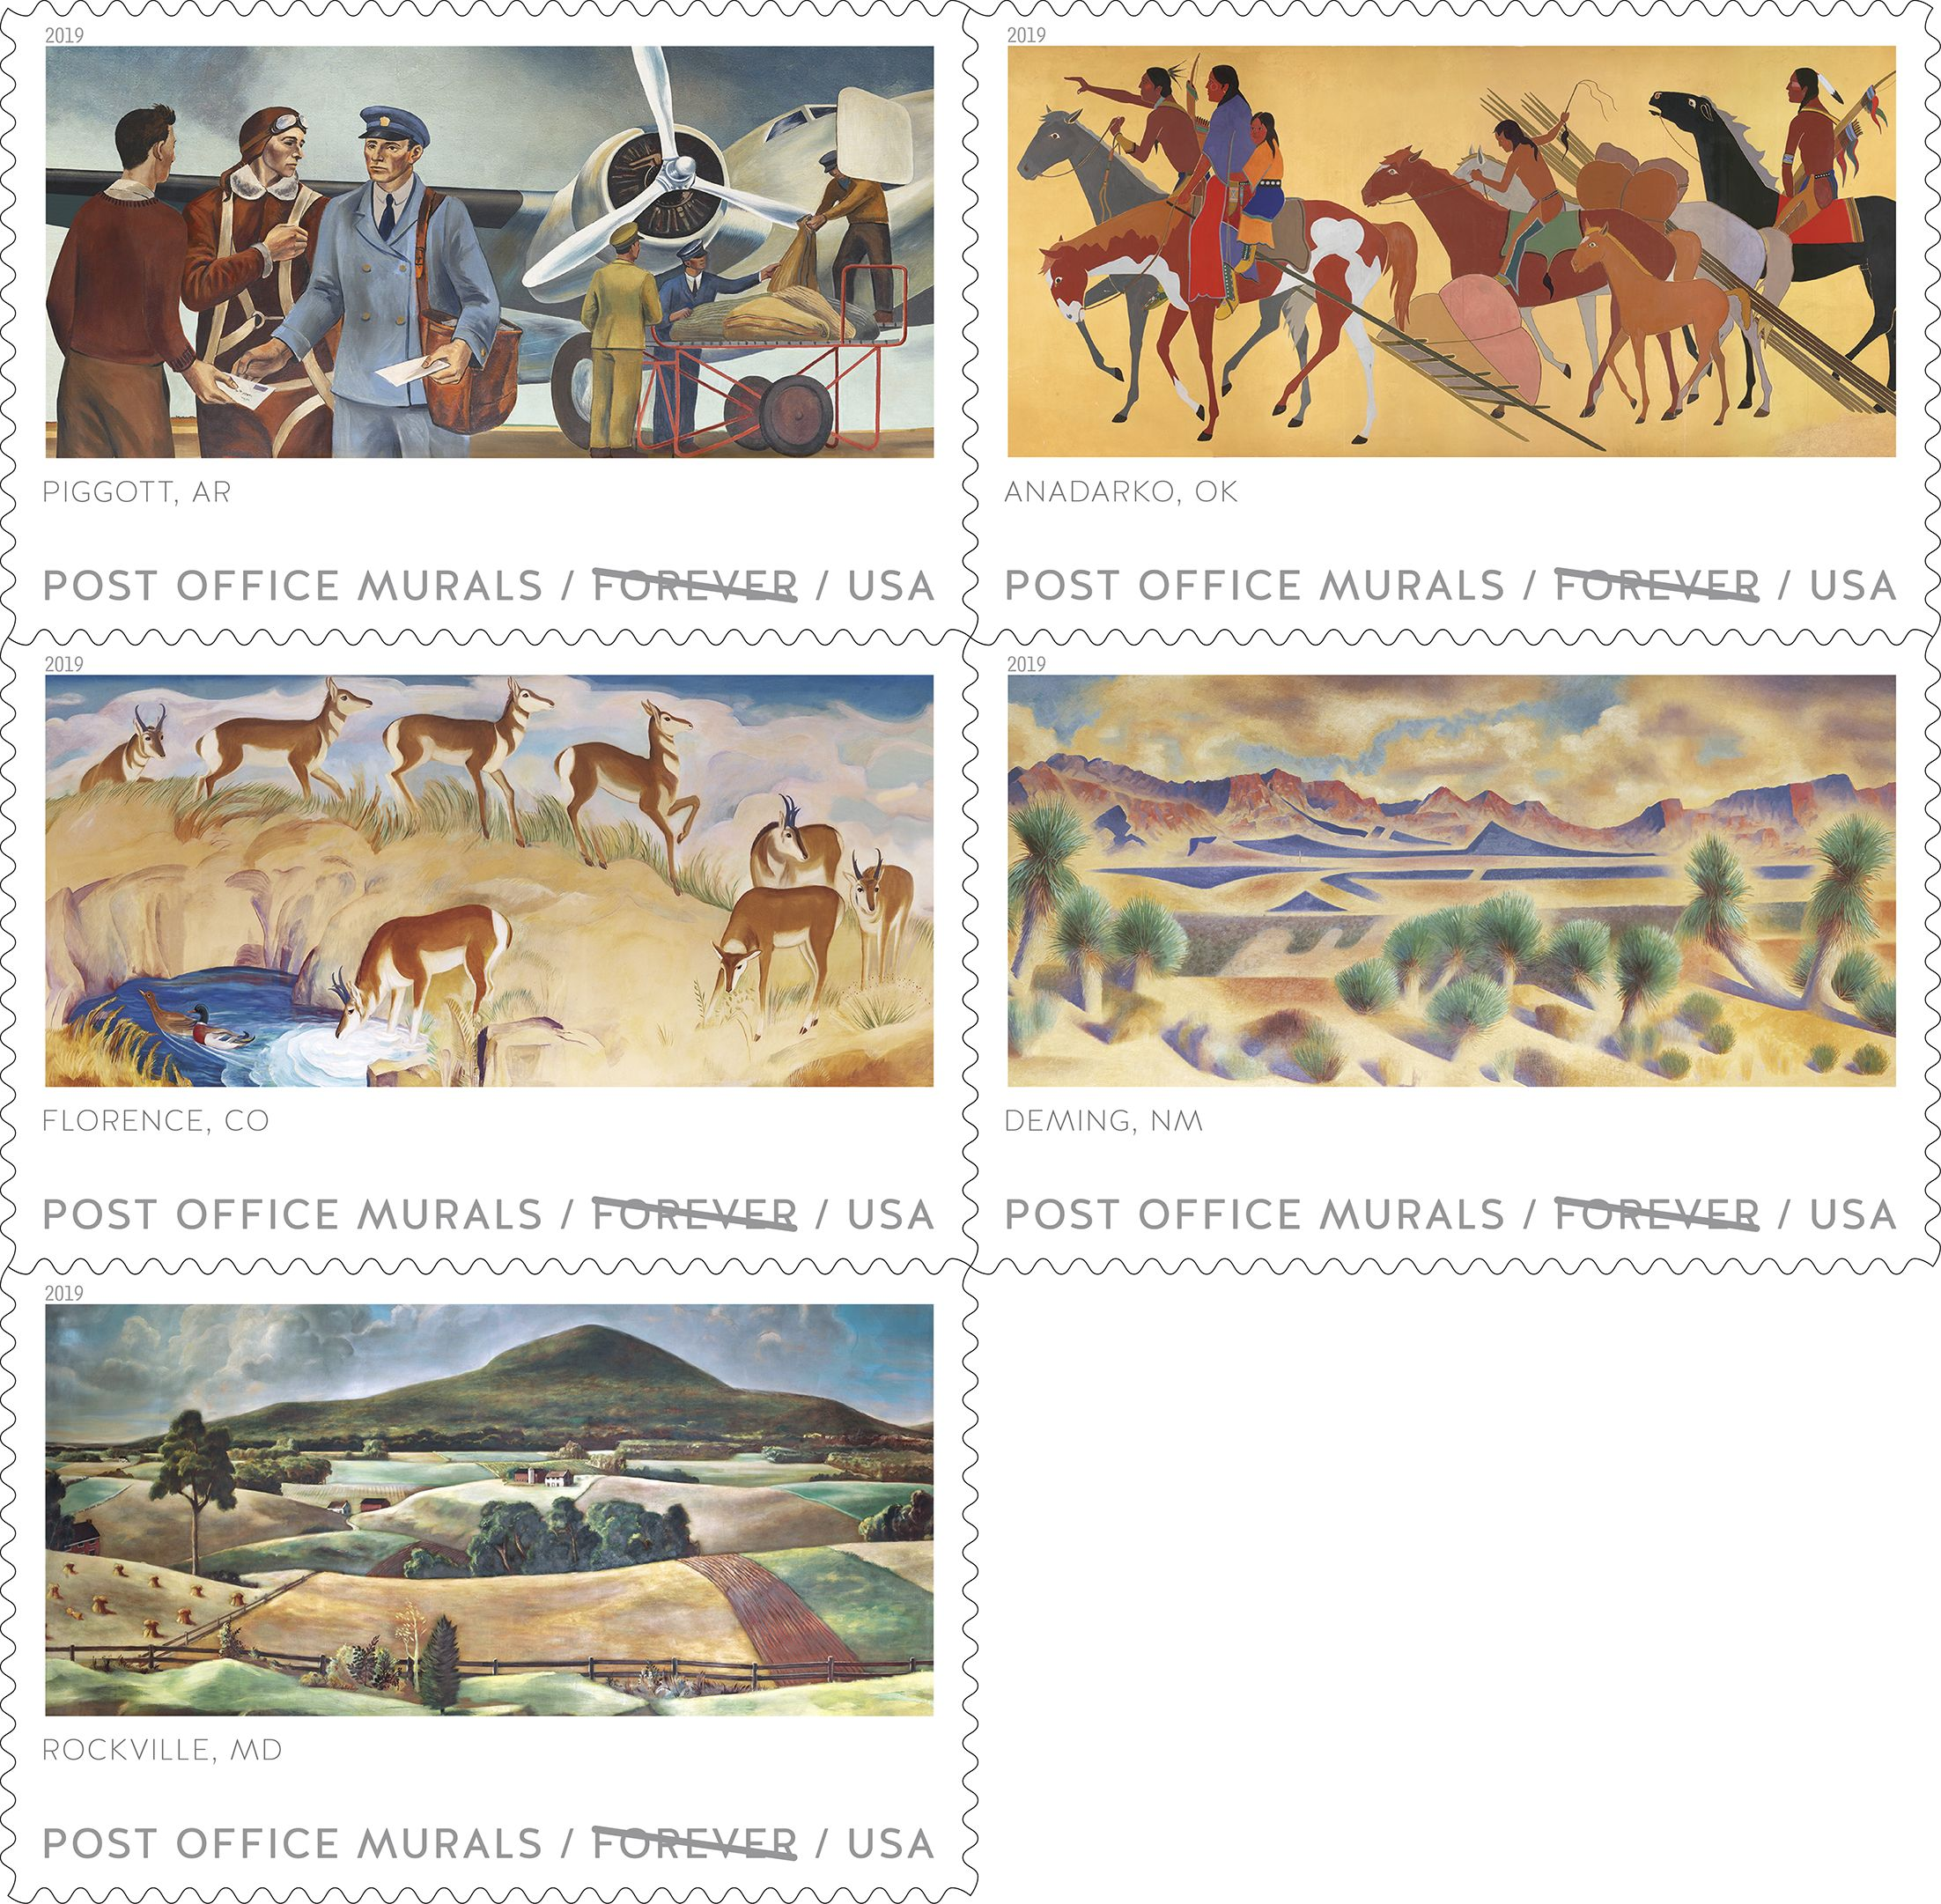 Christmas Stamps 2019.2019 New Issues